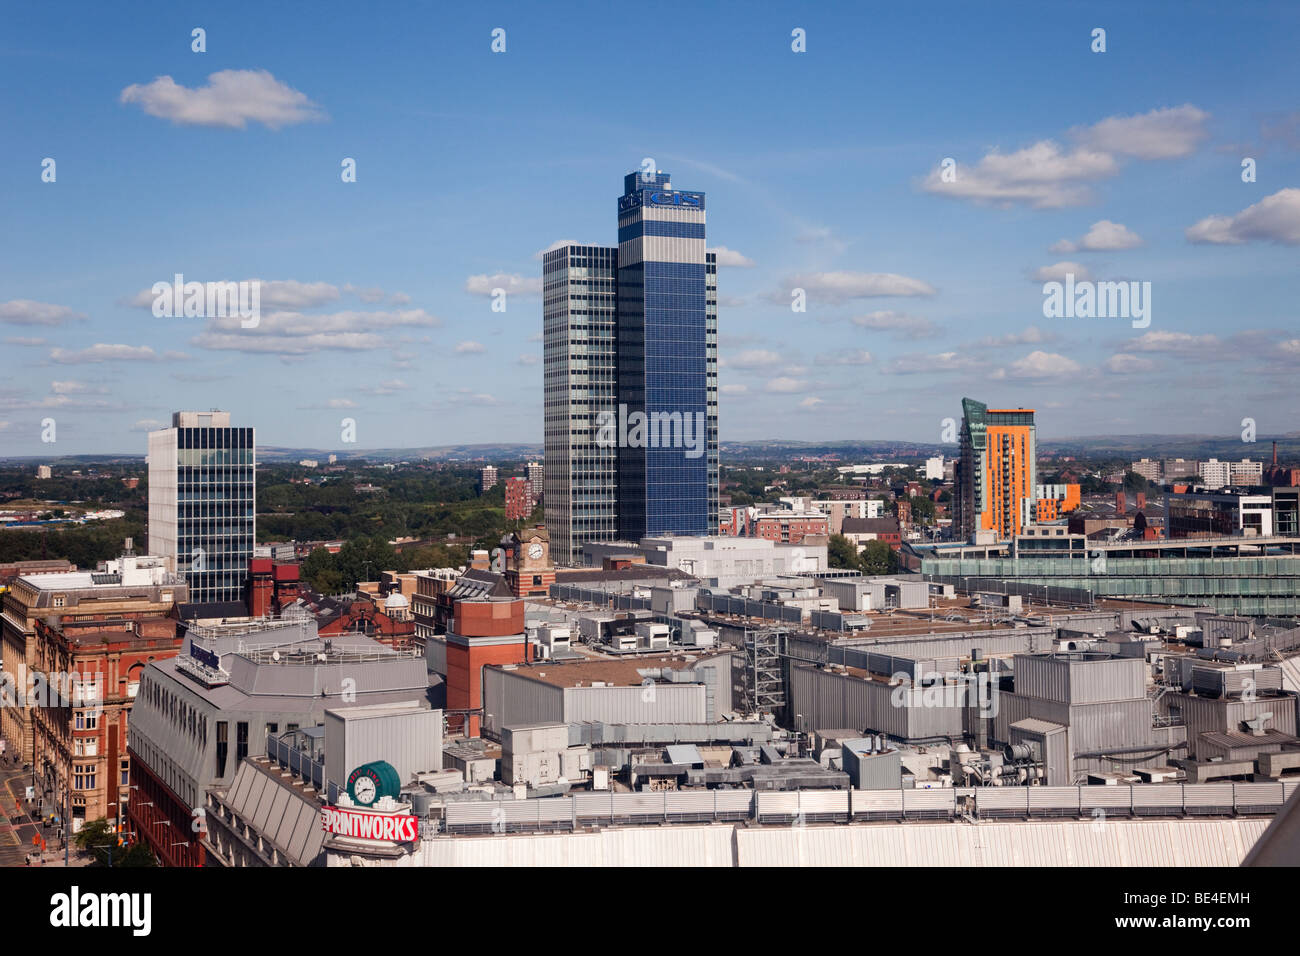 Corporation Street, Manchester, England, UK, Europe. Skyline view north from The Wheel of Manchester in the city - Stock Image